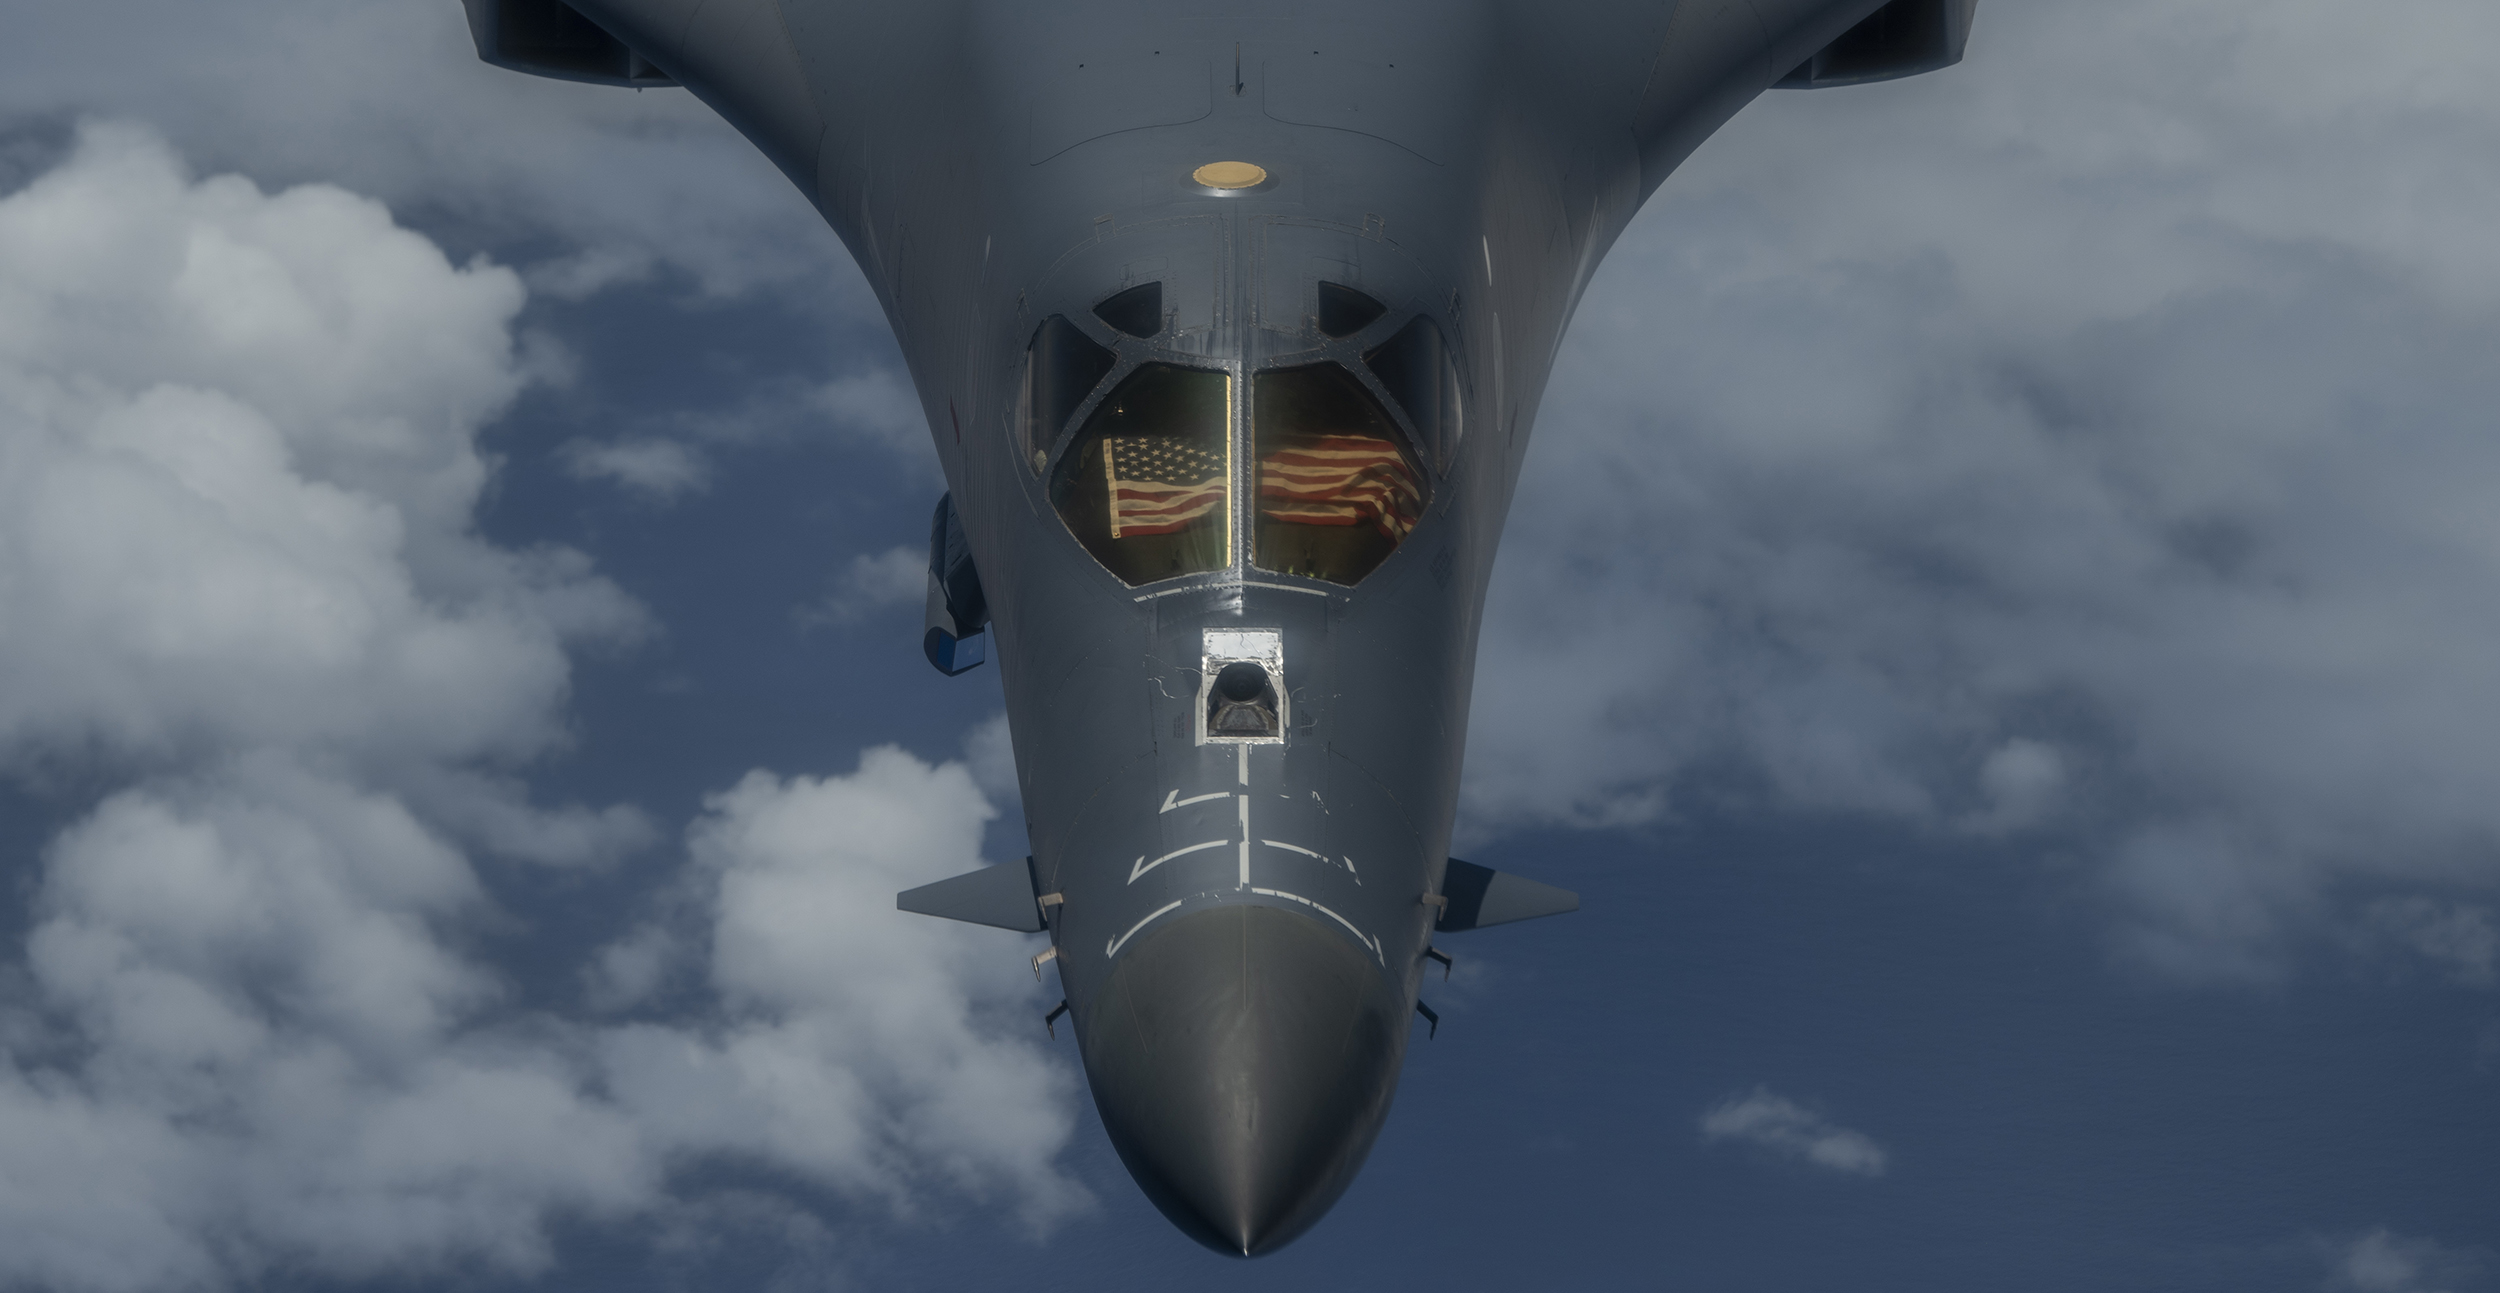 A 9th Expeditionary Bomb Squadron B-1B Lancer flies over the East China Sea May 6, 2020, during a training mission. (Senior Airman River Bruce/Air Force)